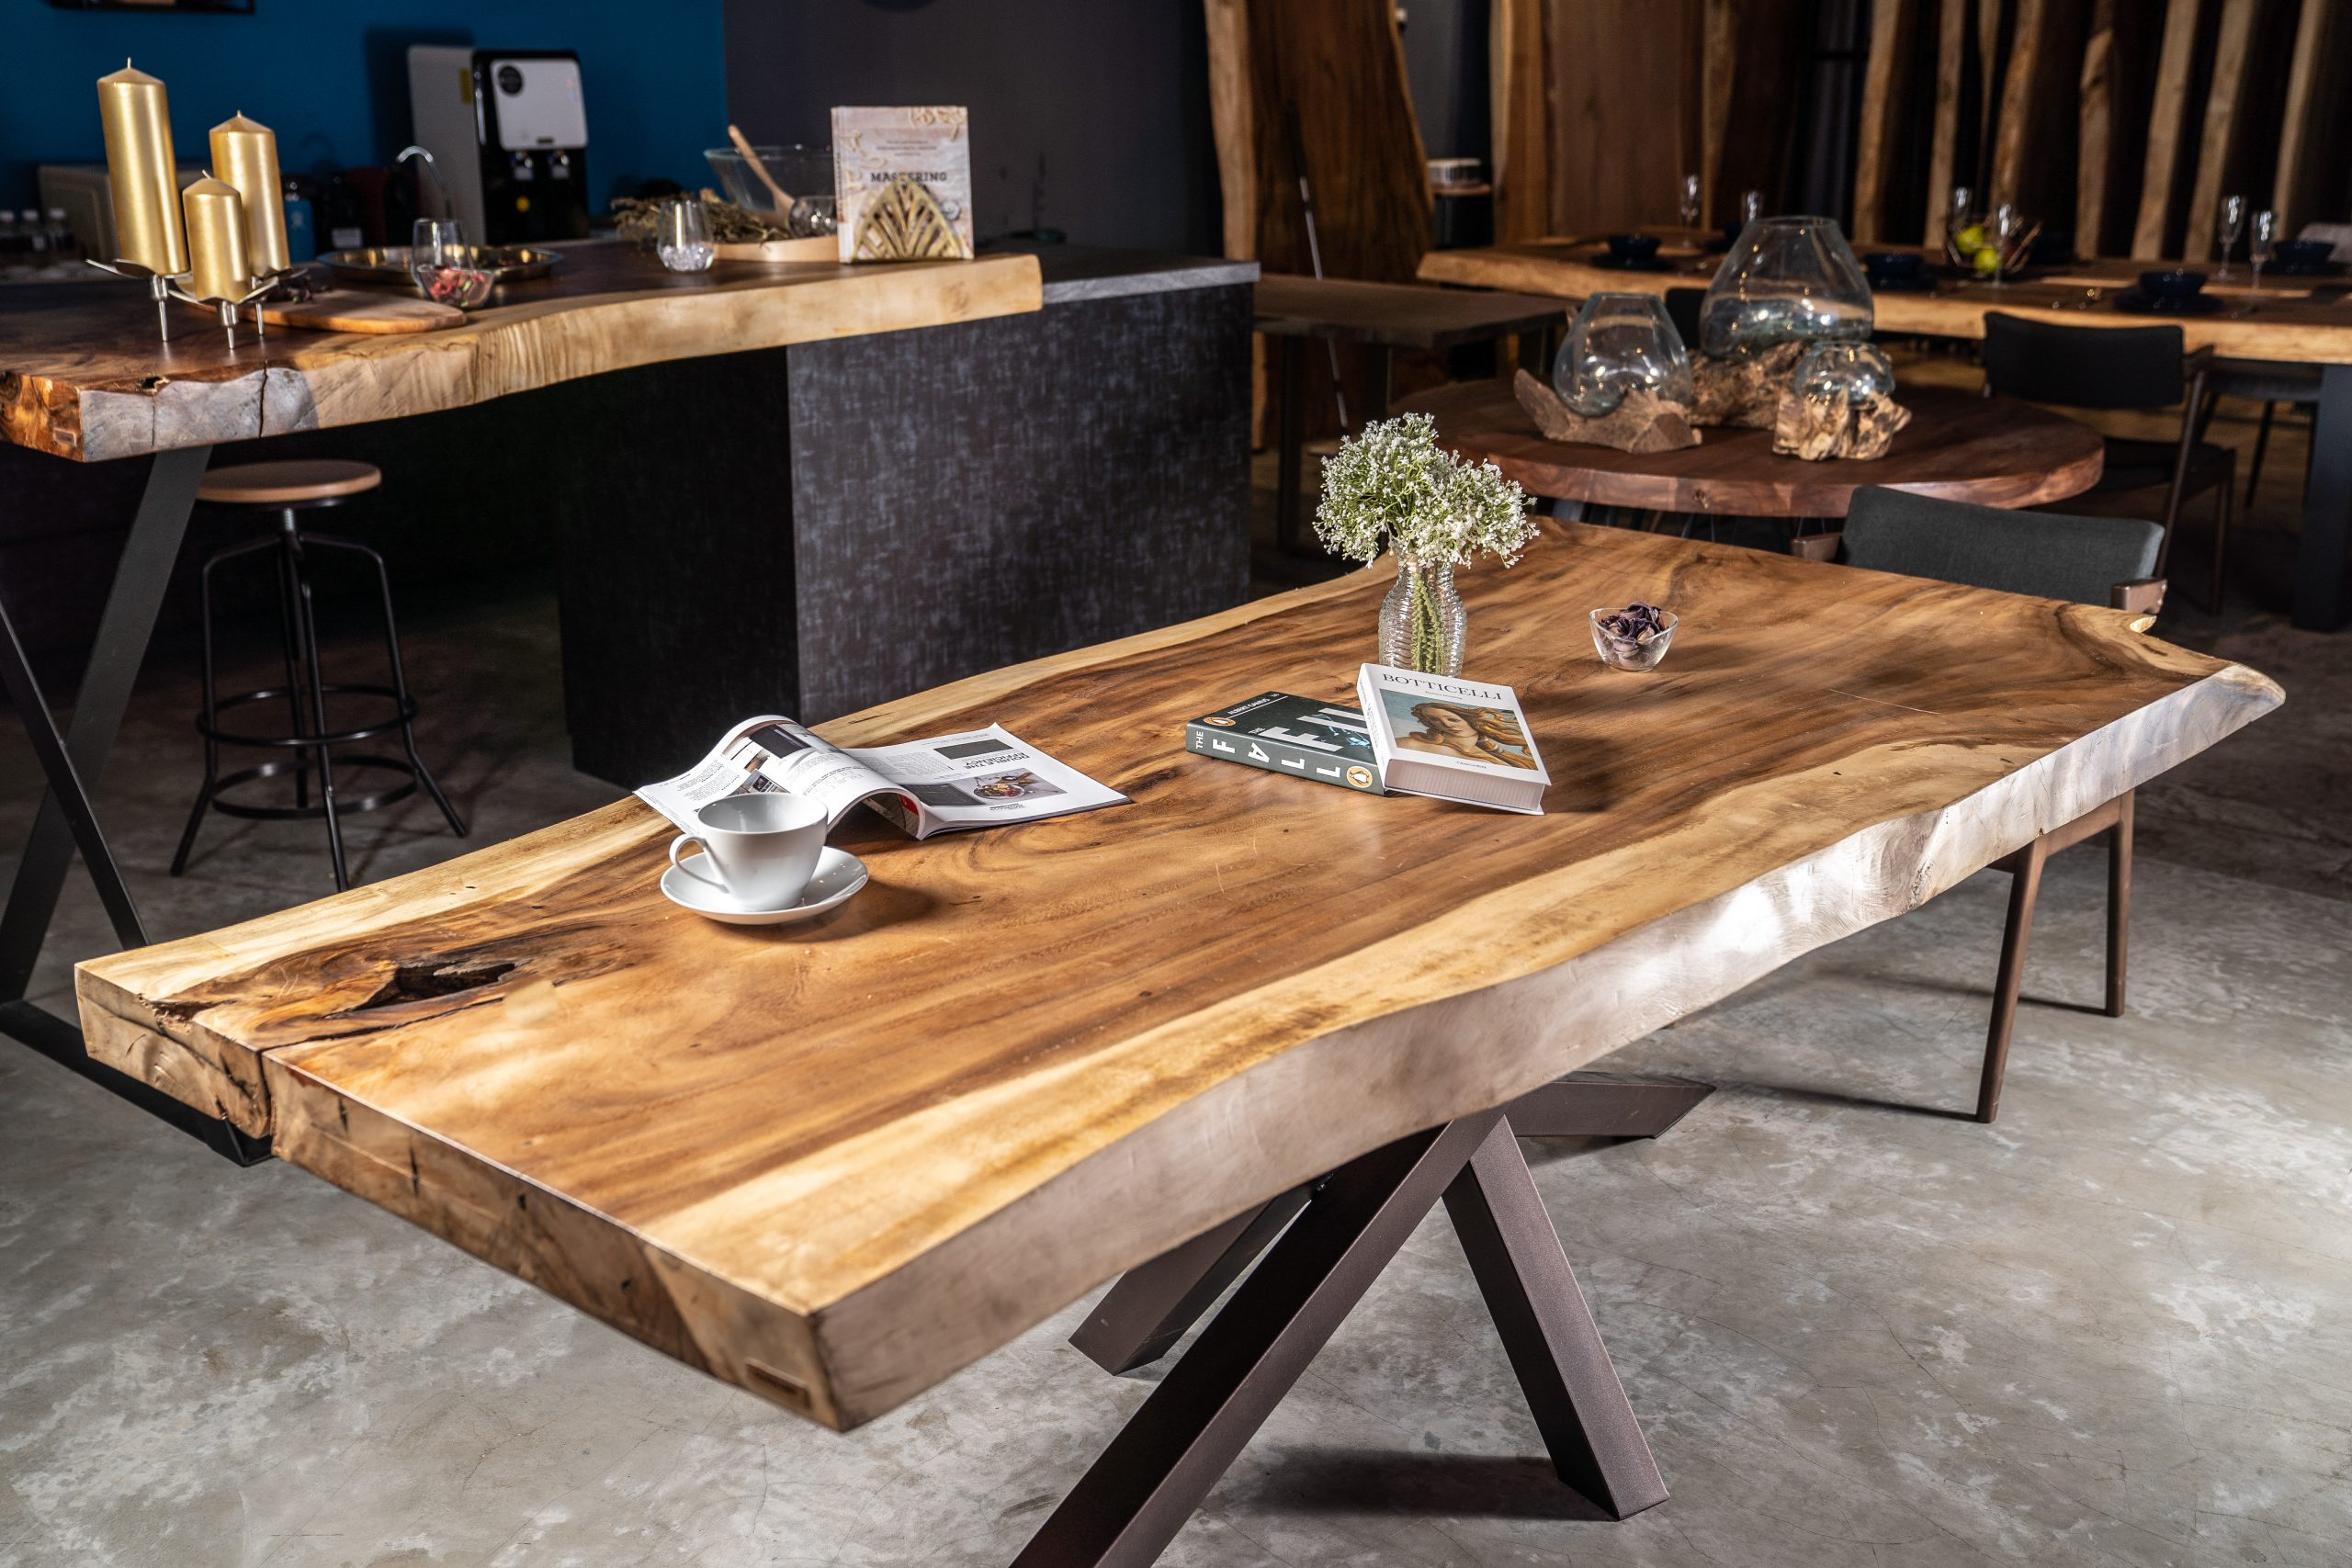 Searched a lot to buy a dining table, but this one is the best price for 4 people table. Suar Wood Dining Table - Masons Home Decor